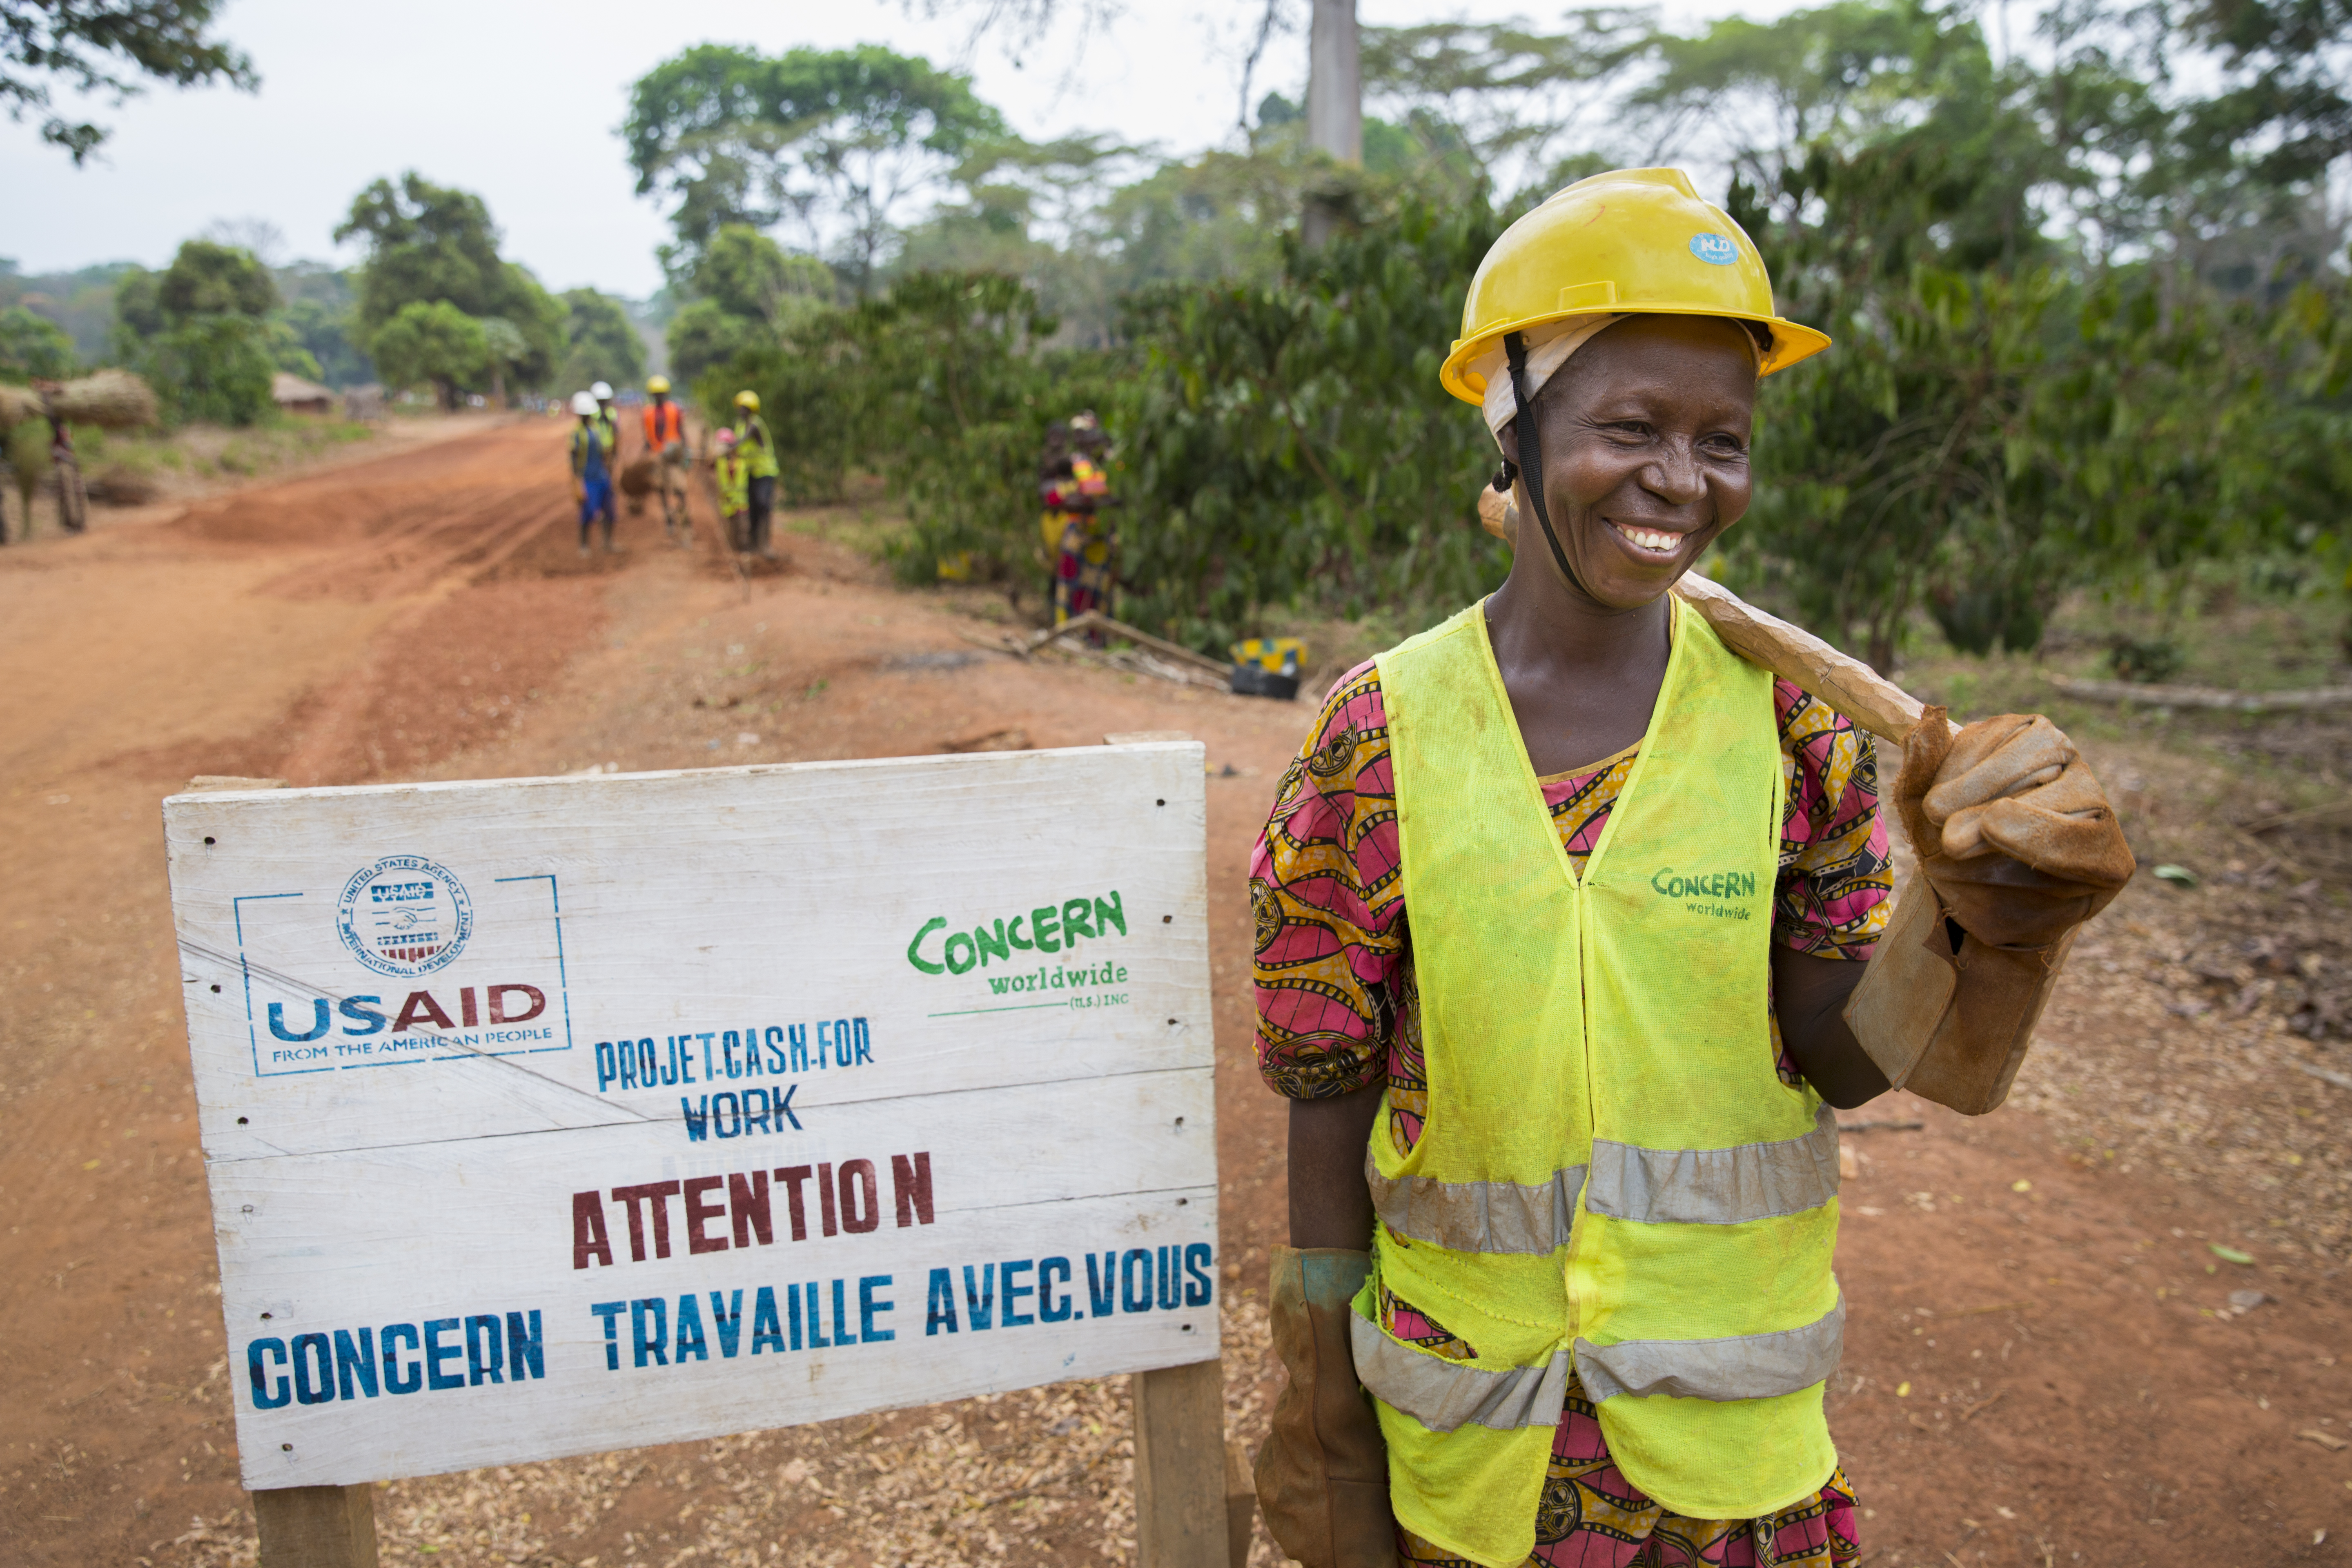 Smiling woman with hard hat and pick axe, standing on road beside a sign